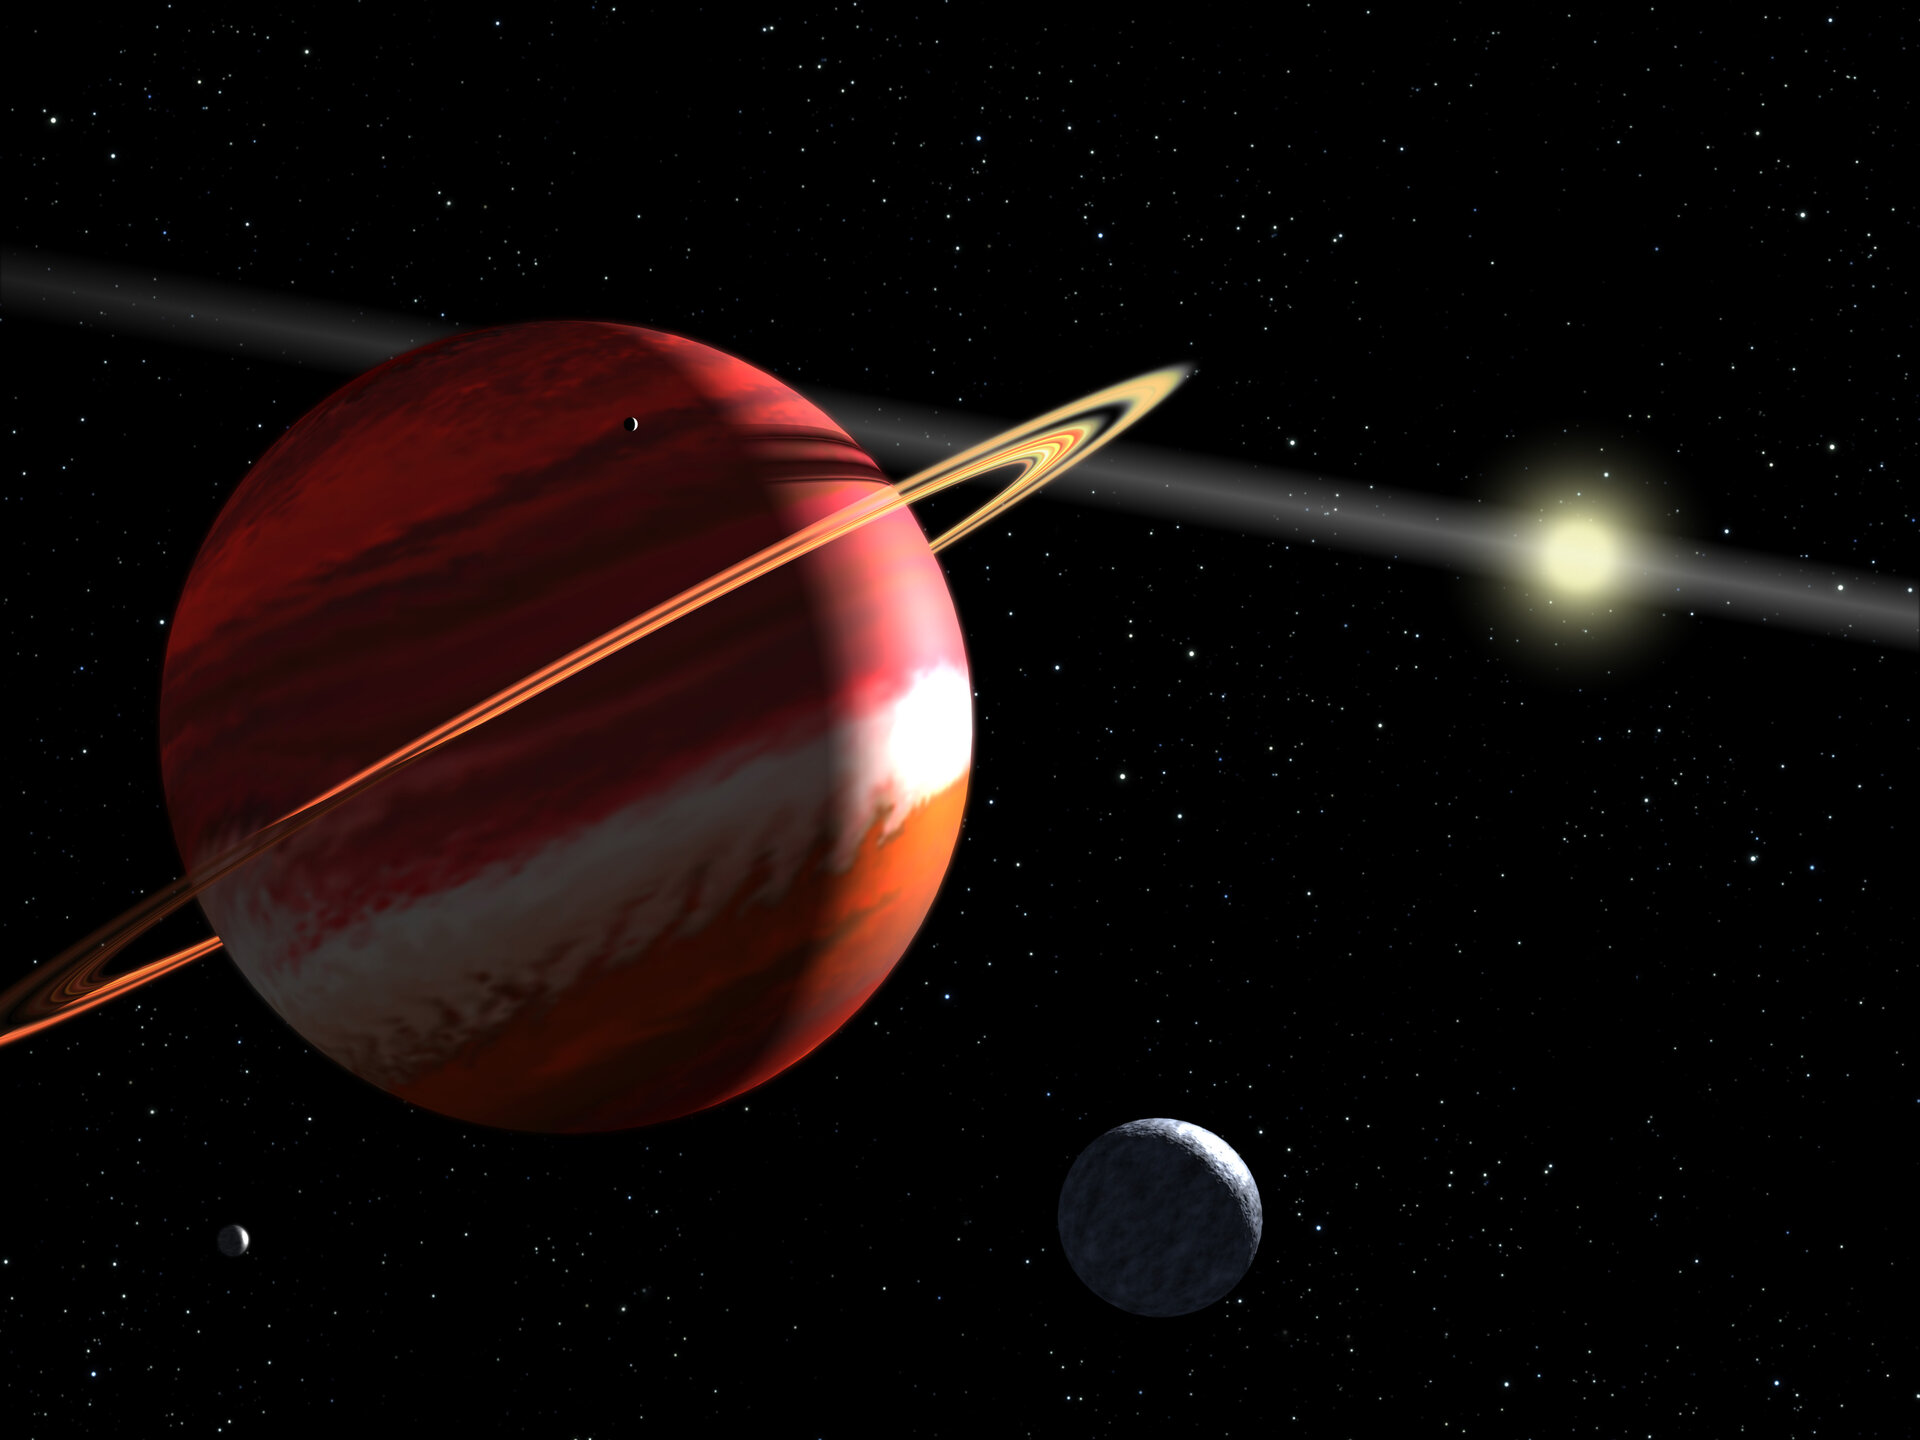 Artist's concept of nearest exoplanet to our Solar System